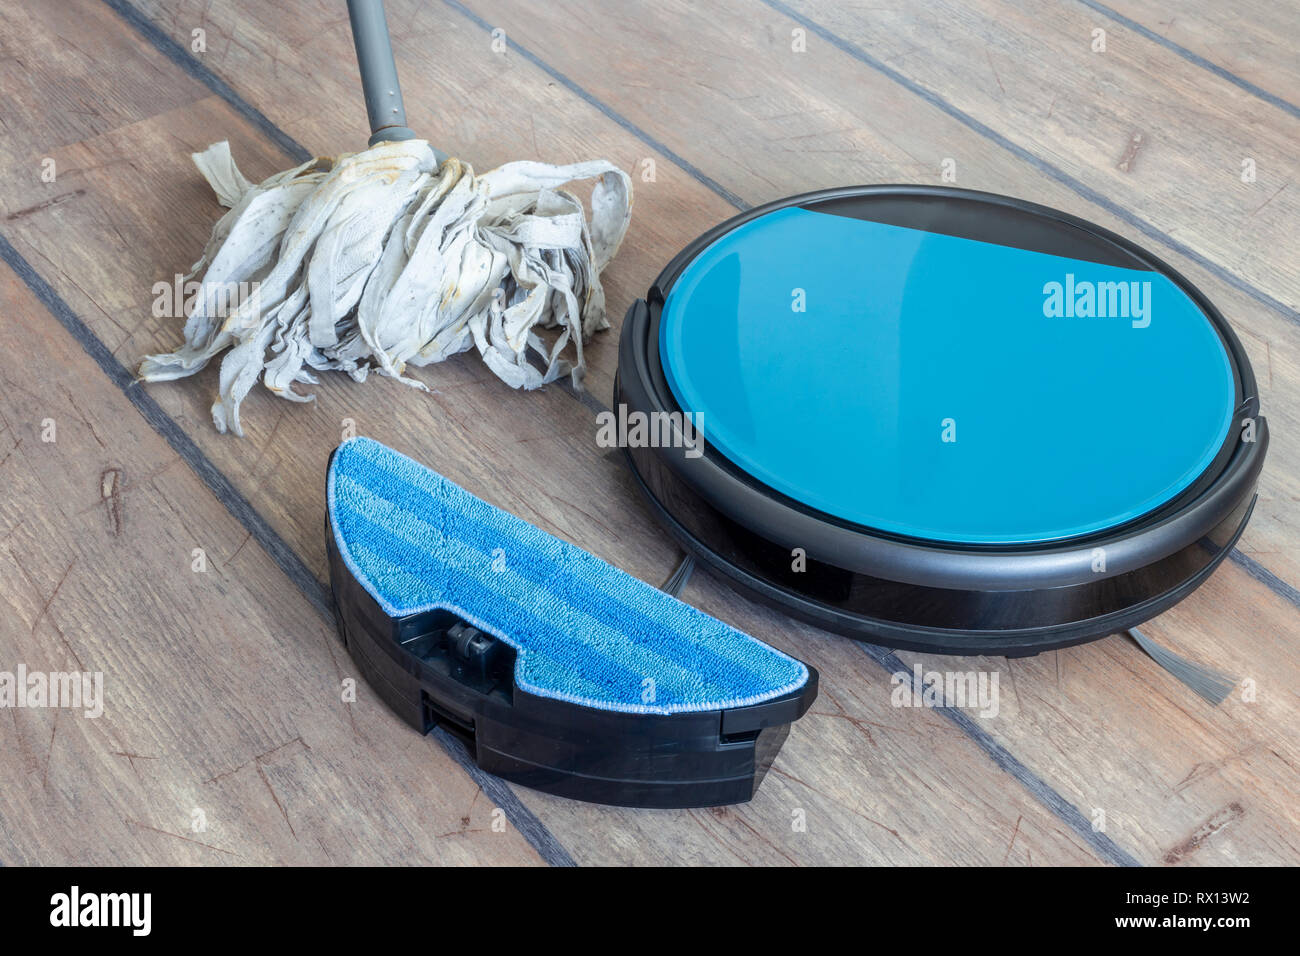 Water tank of a robot vacuum claner. Mop feature with attachment. - Stock Image